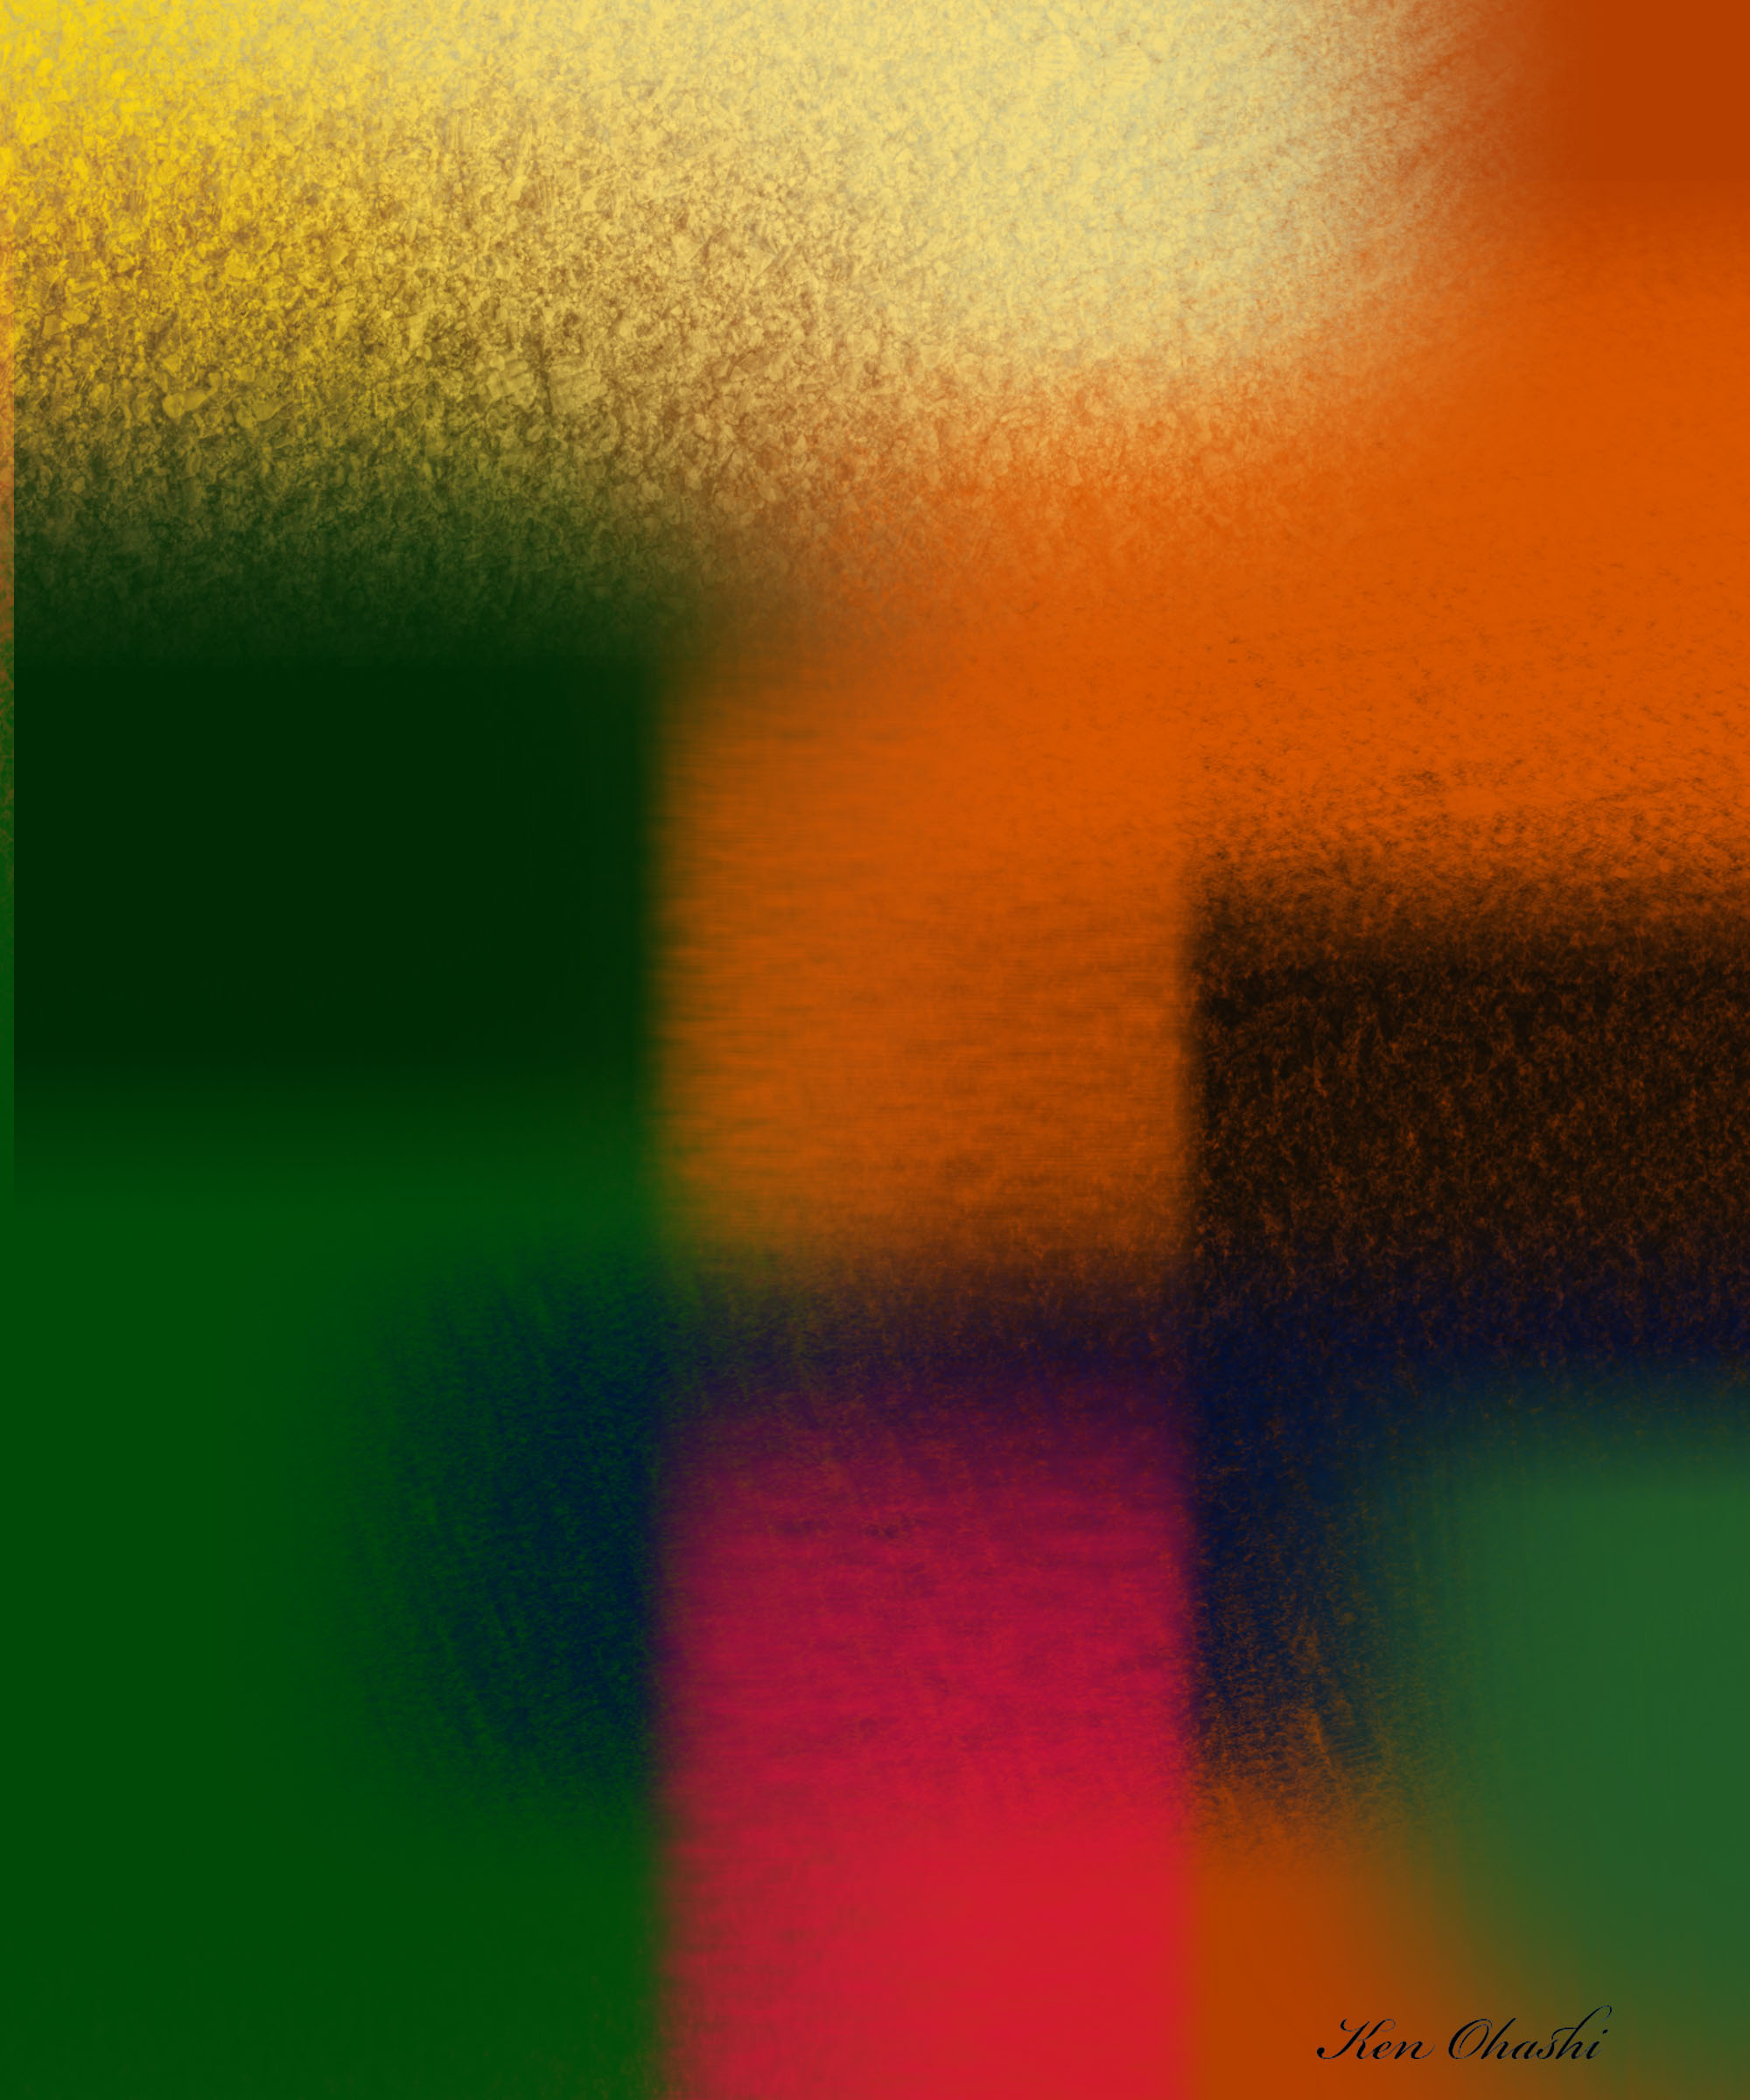 Abstraction_20100815_06